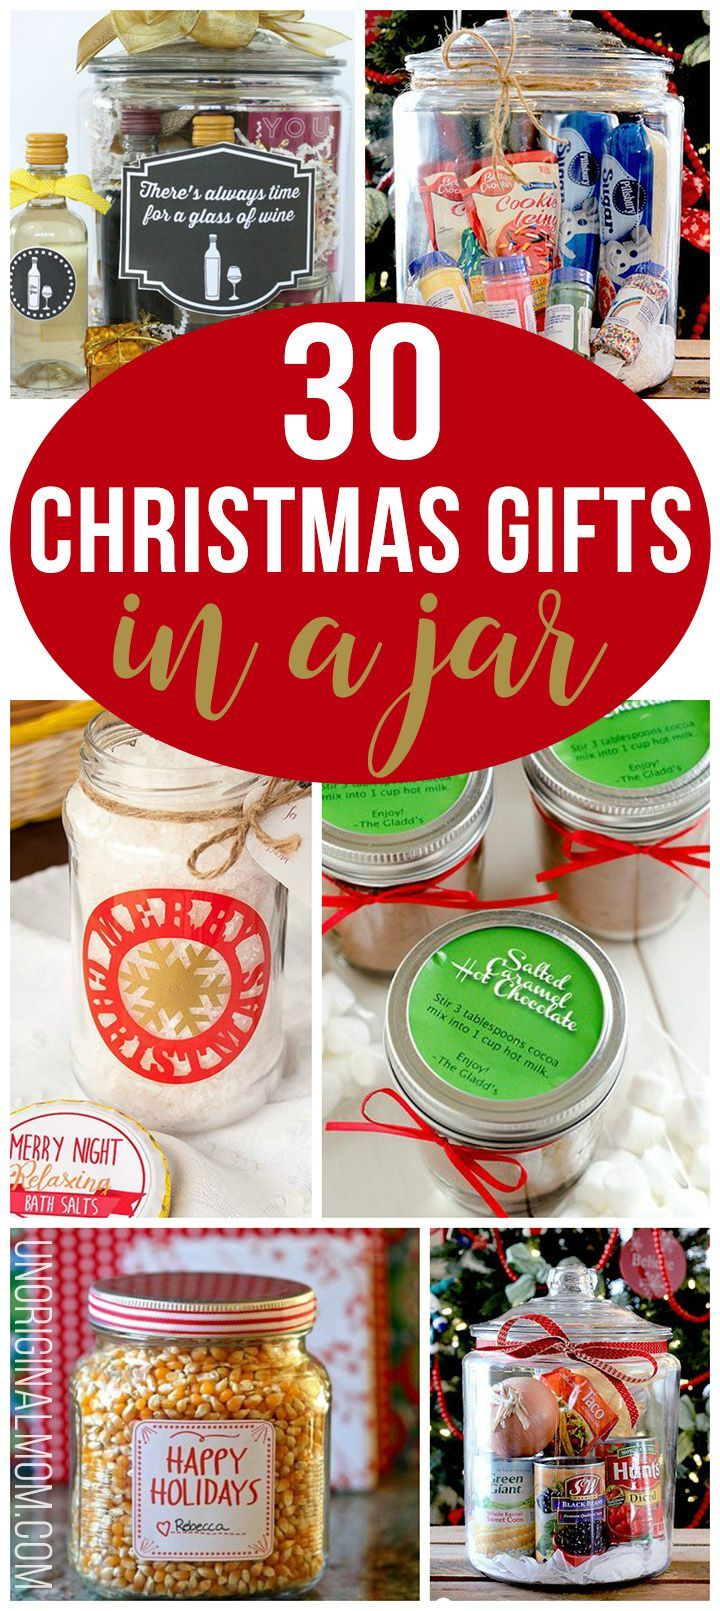 Best 25+ Unique christmas gifts ideas on Pinterest | Christmas ...